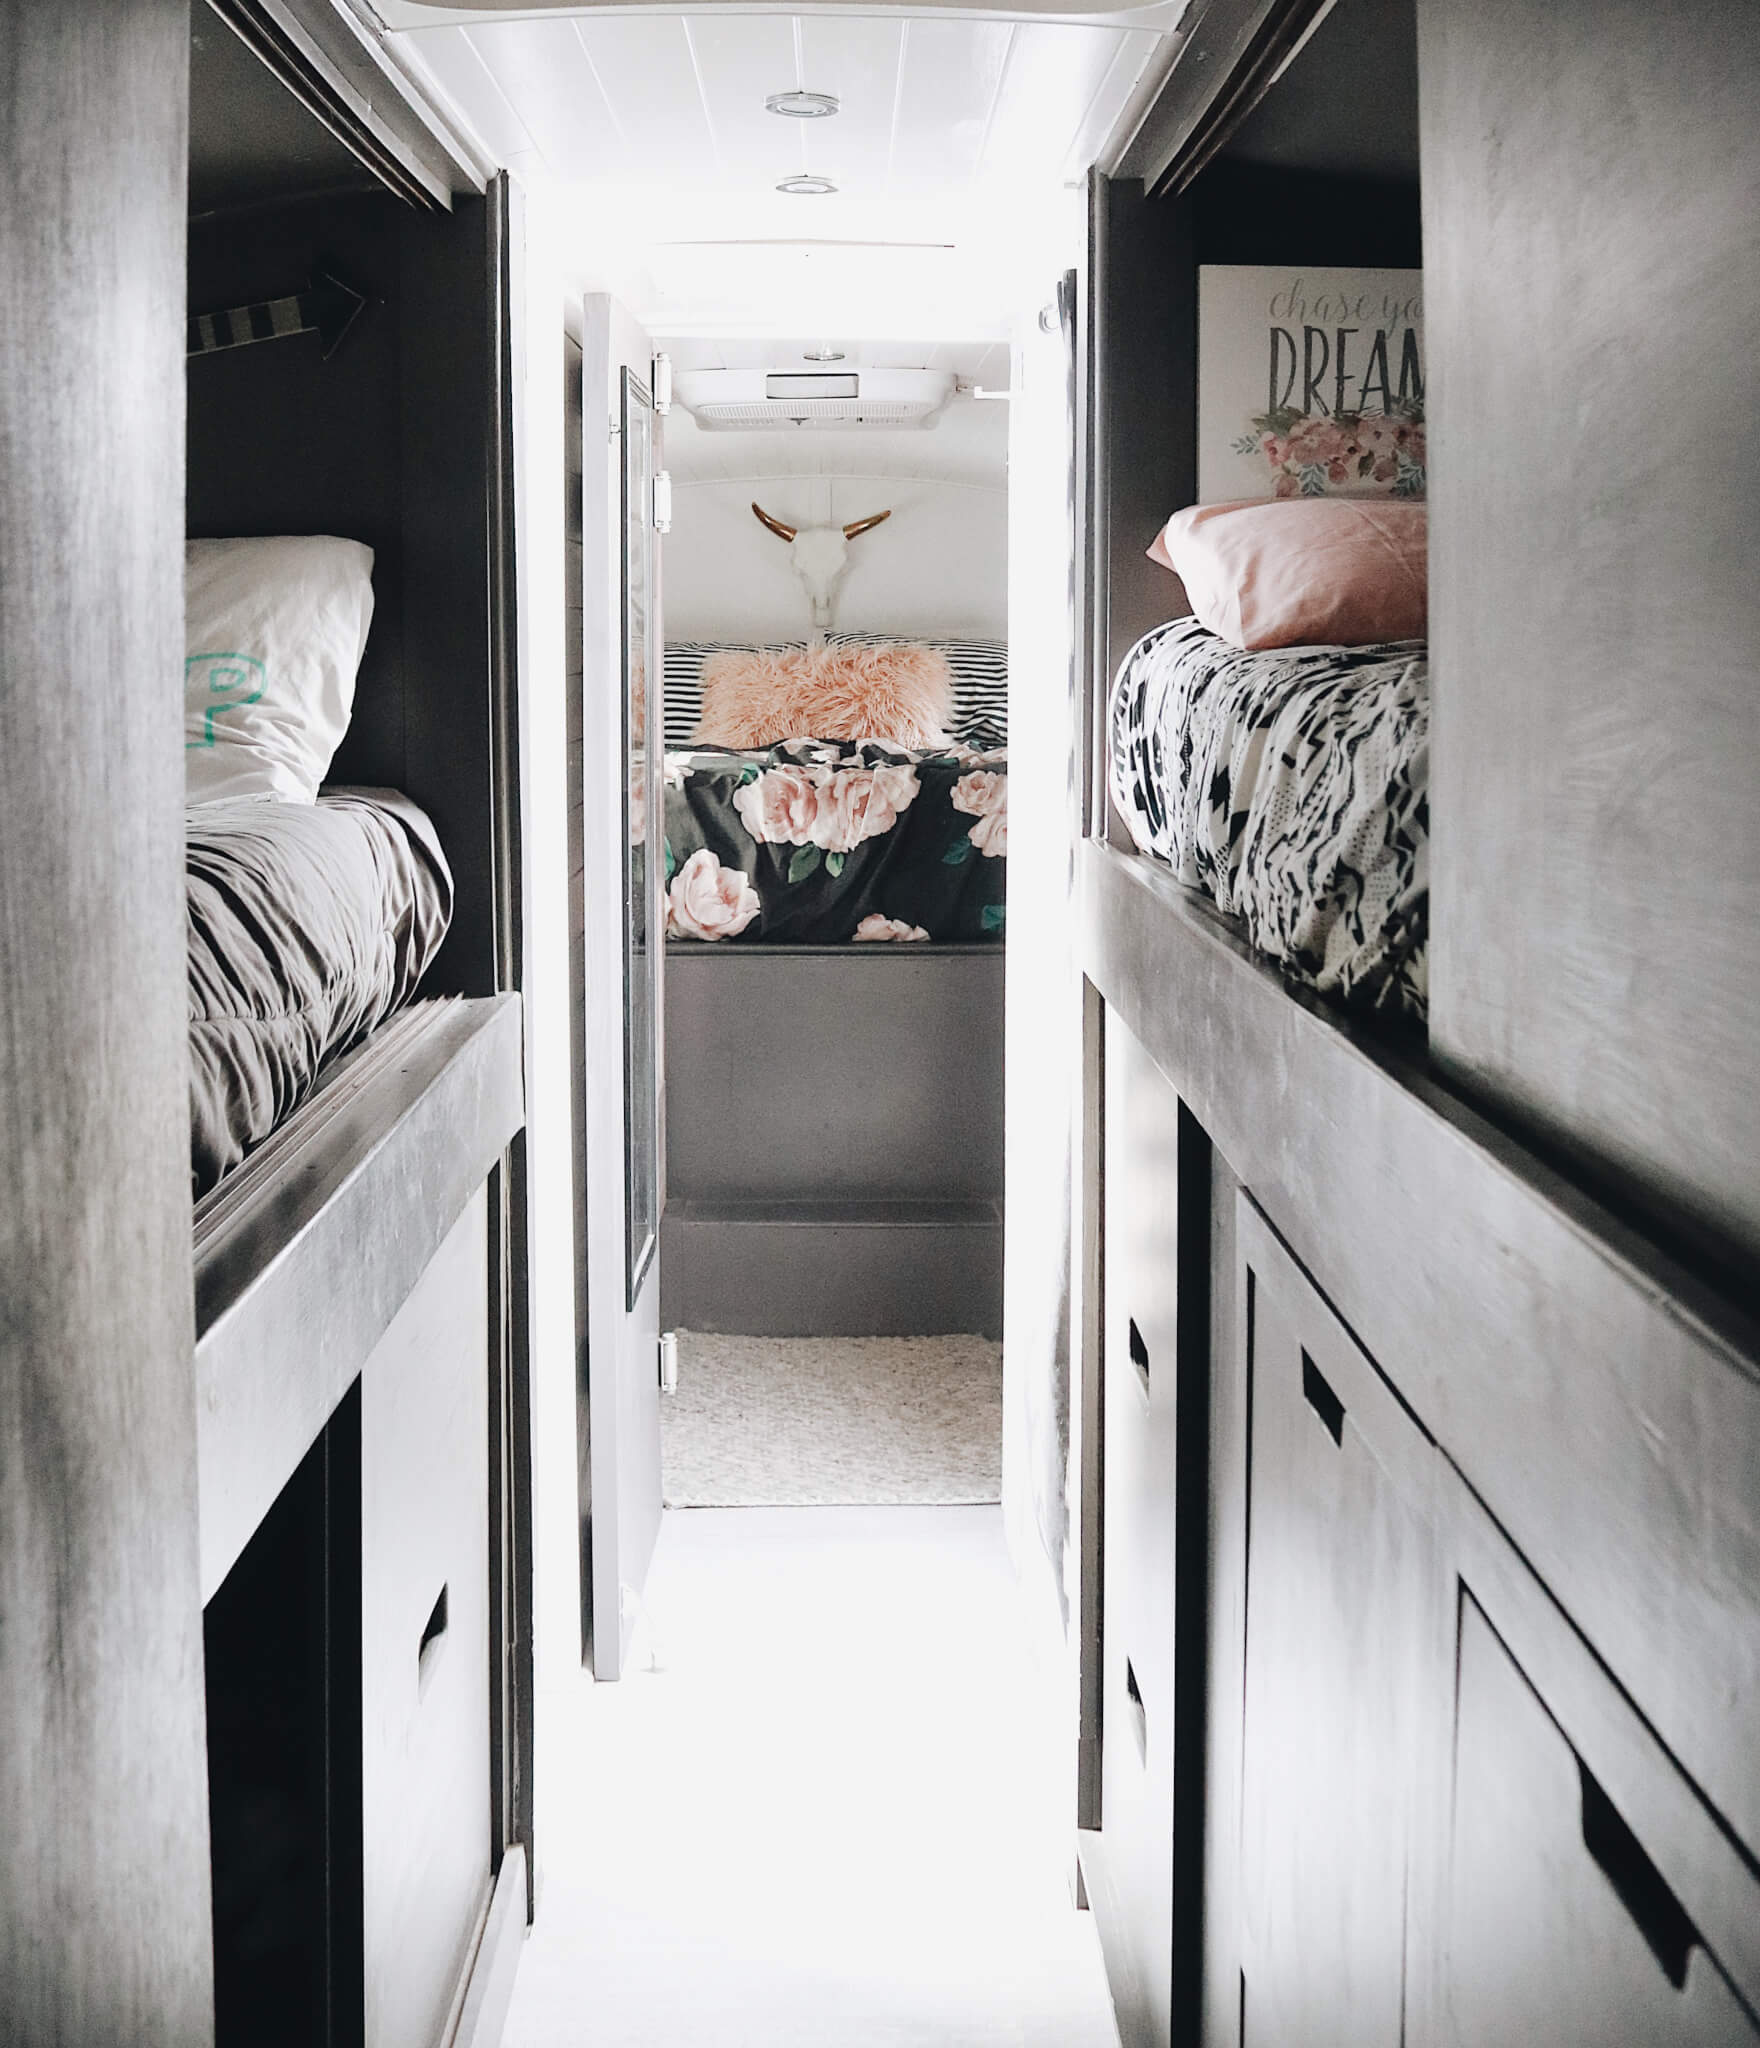 bunk beds in converted school bus